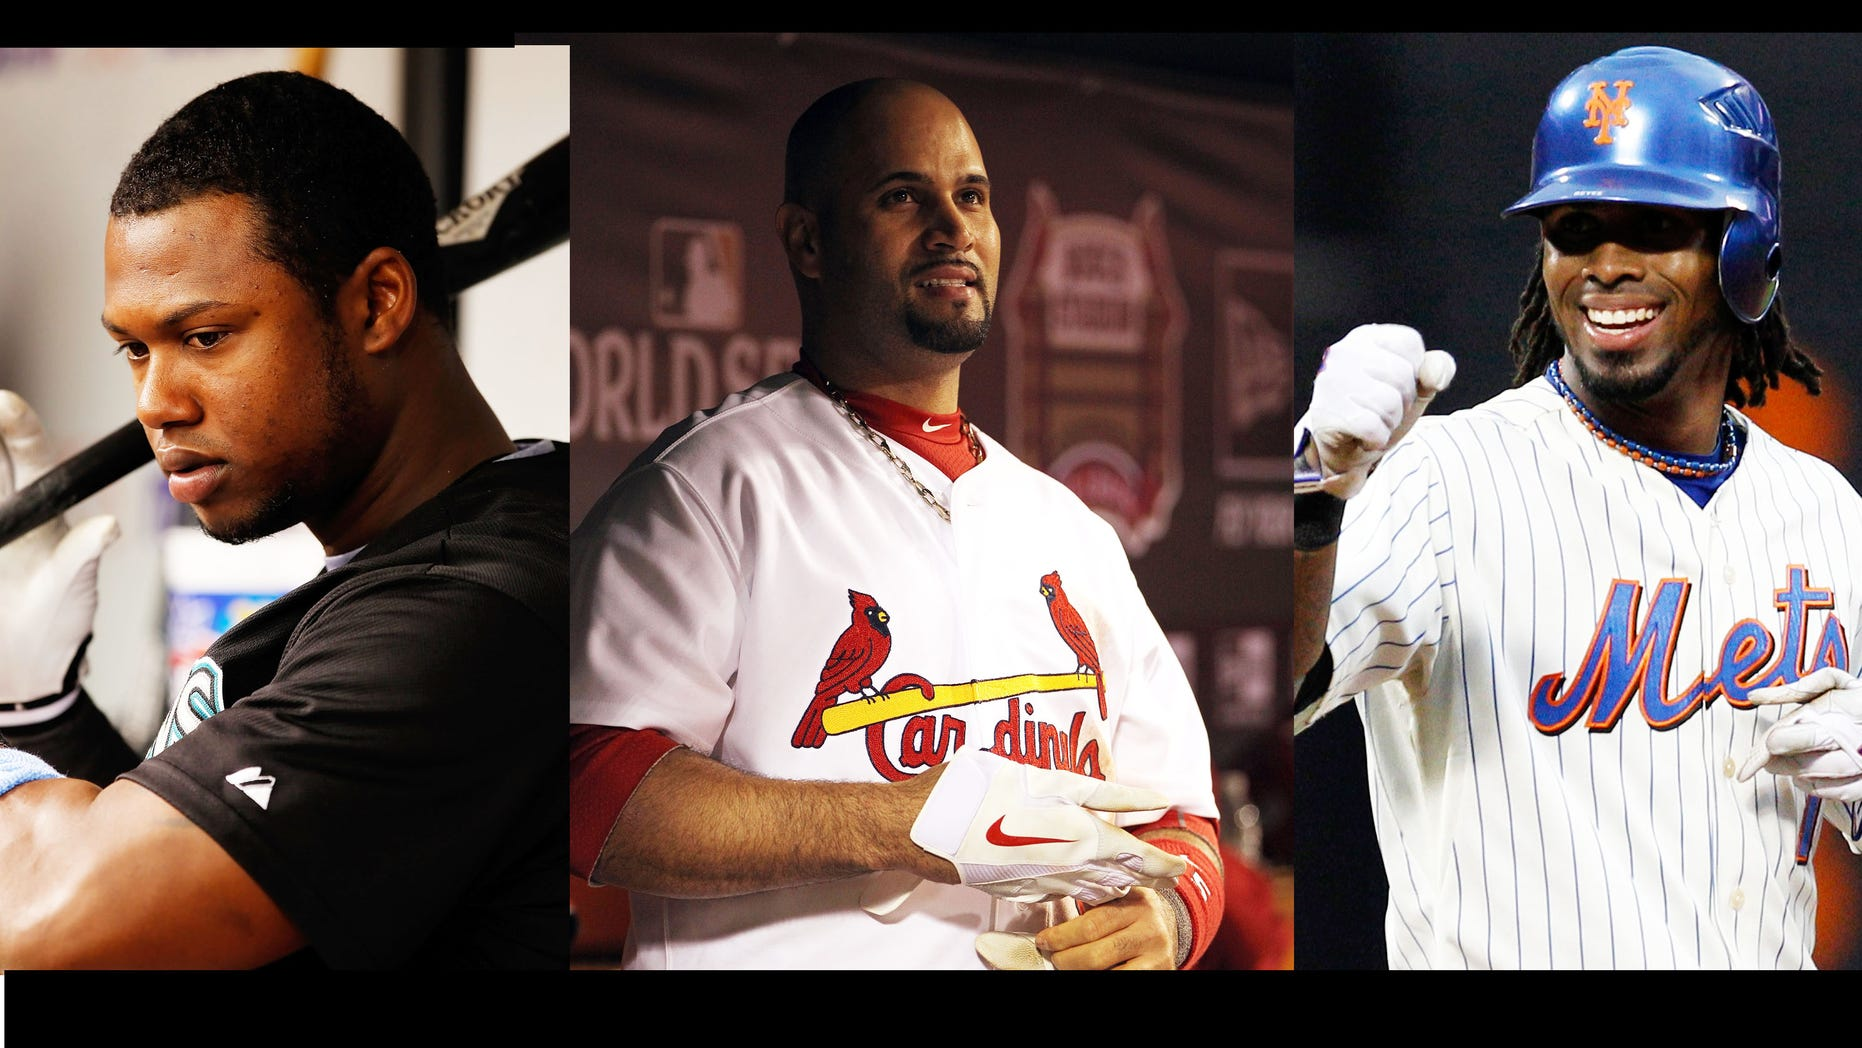 Miami Marlins Shortstop Hanley Ramirez (Left), St. Louis Cardinals First Baseman Albert Pujols (Middle), and newly acquired Marlins player and former Met Jose Reyes (Right) could all be playing in the same infield next year.